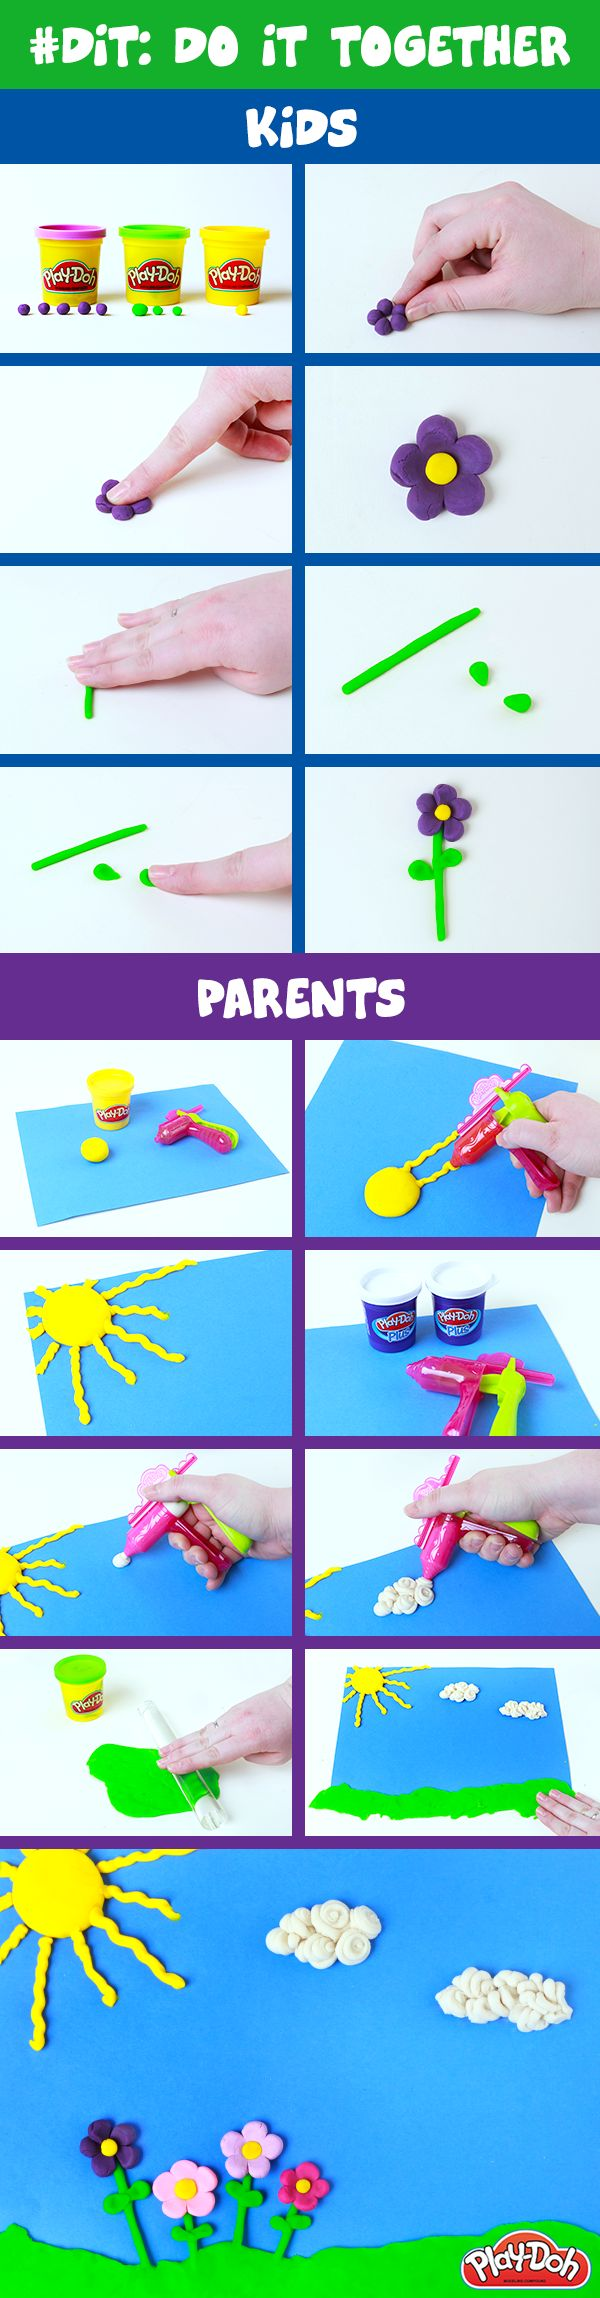 Why #DIY when you can do it together? Try this craft project with your kids! #DIT